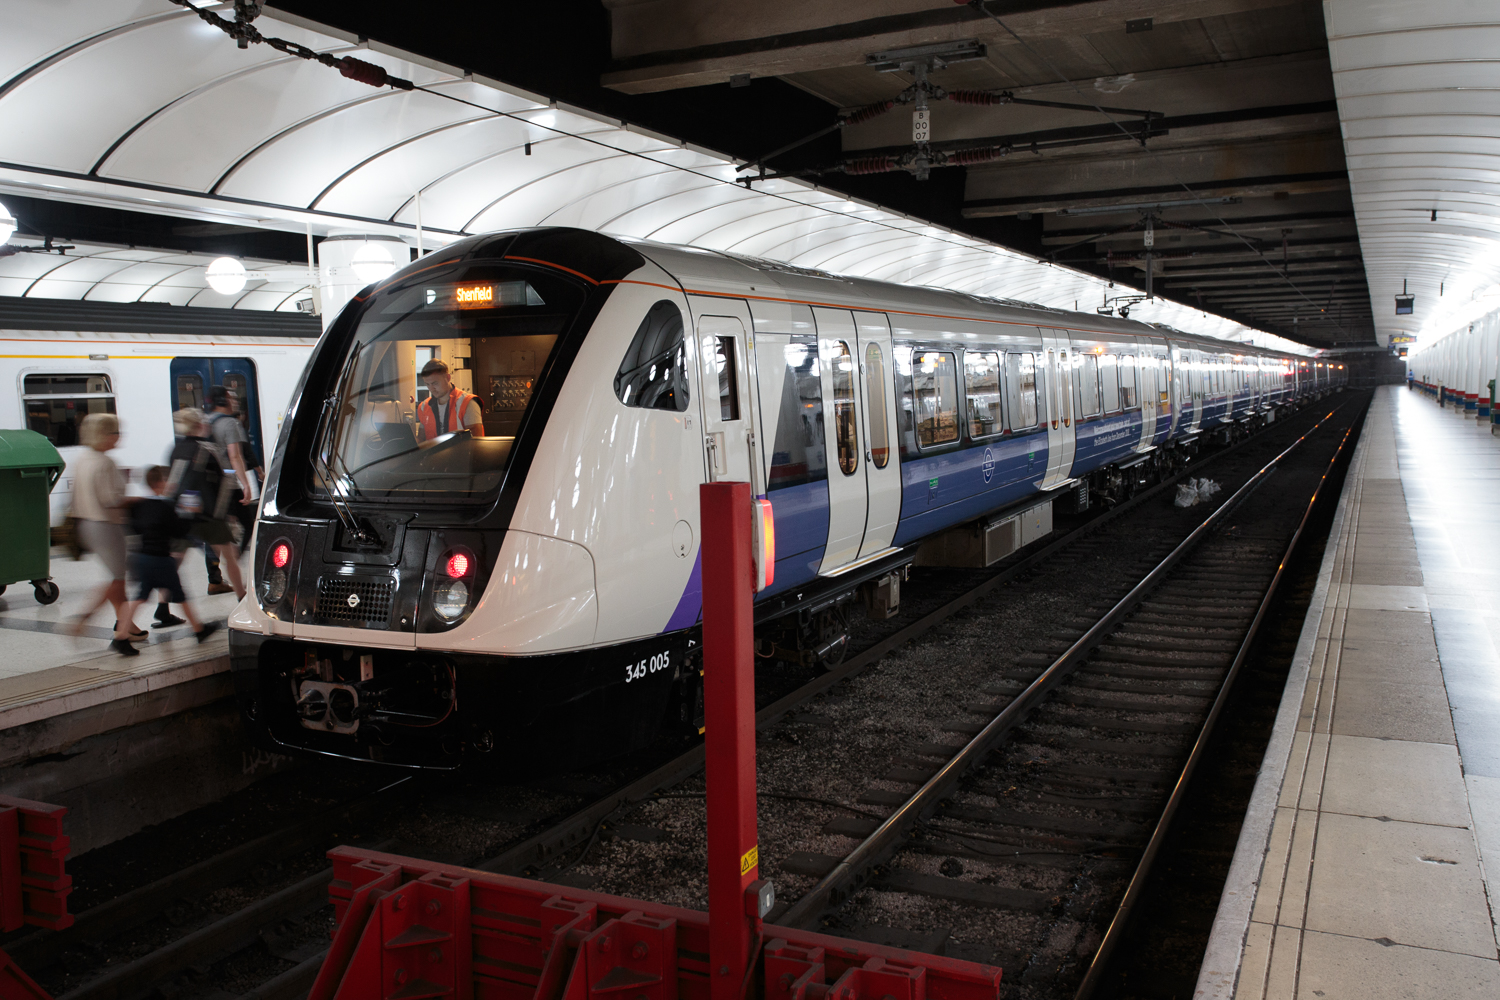 My first ride on the Elizabeth line | Ars Technica